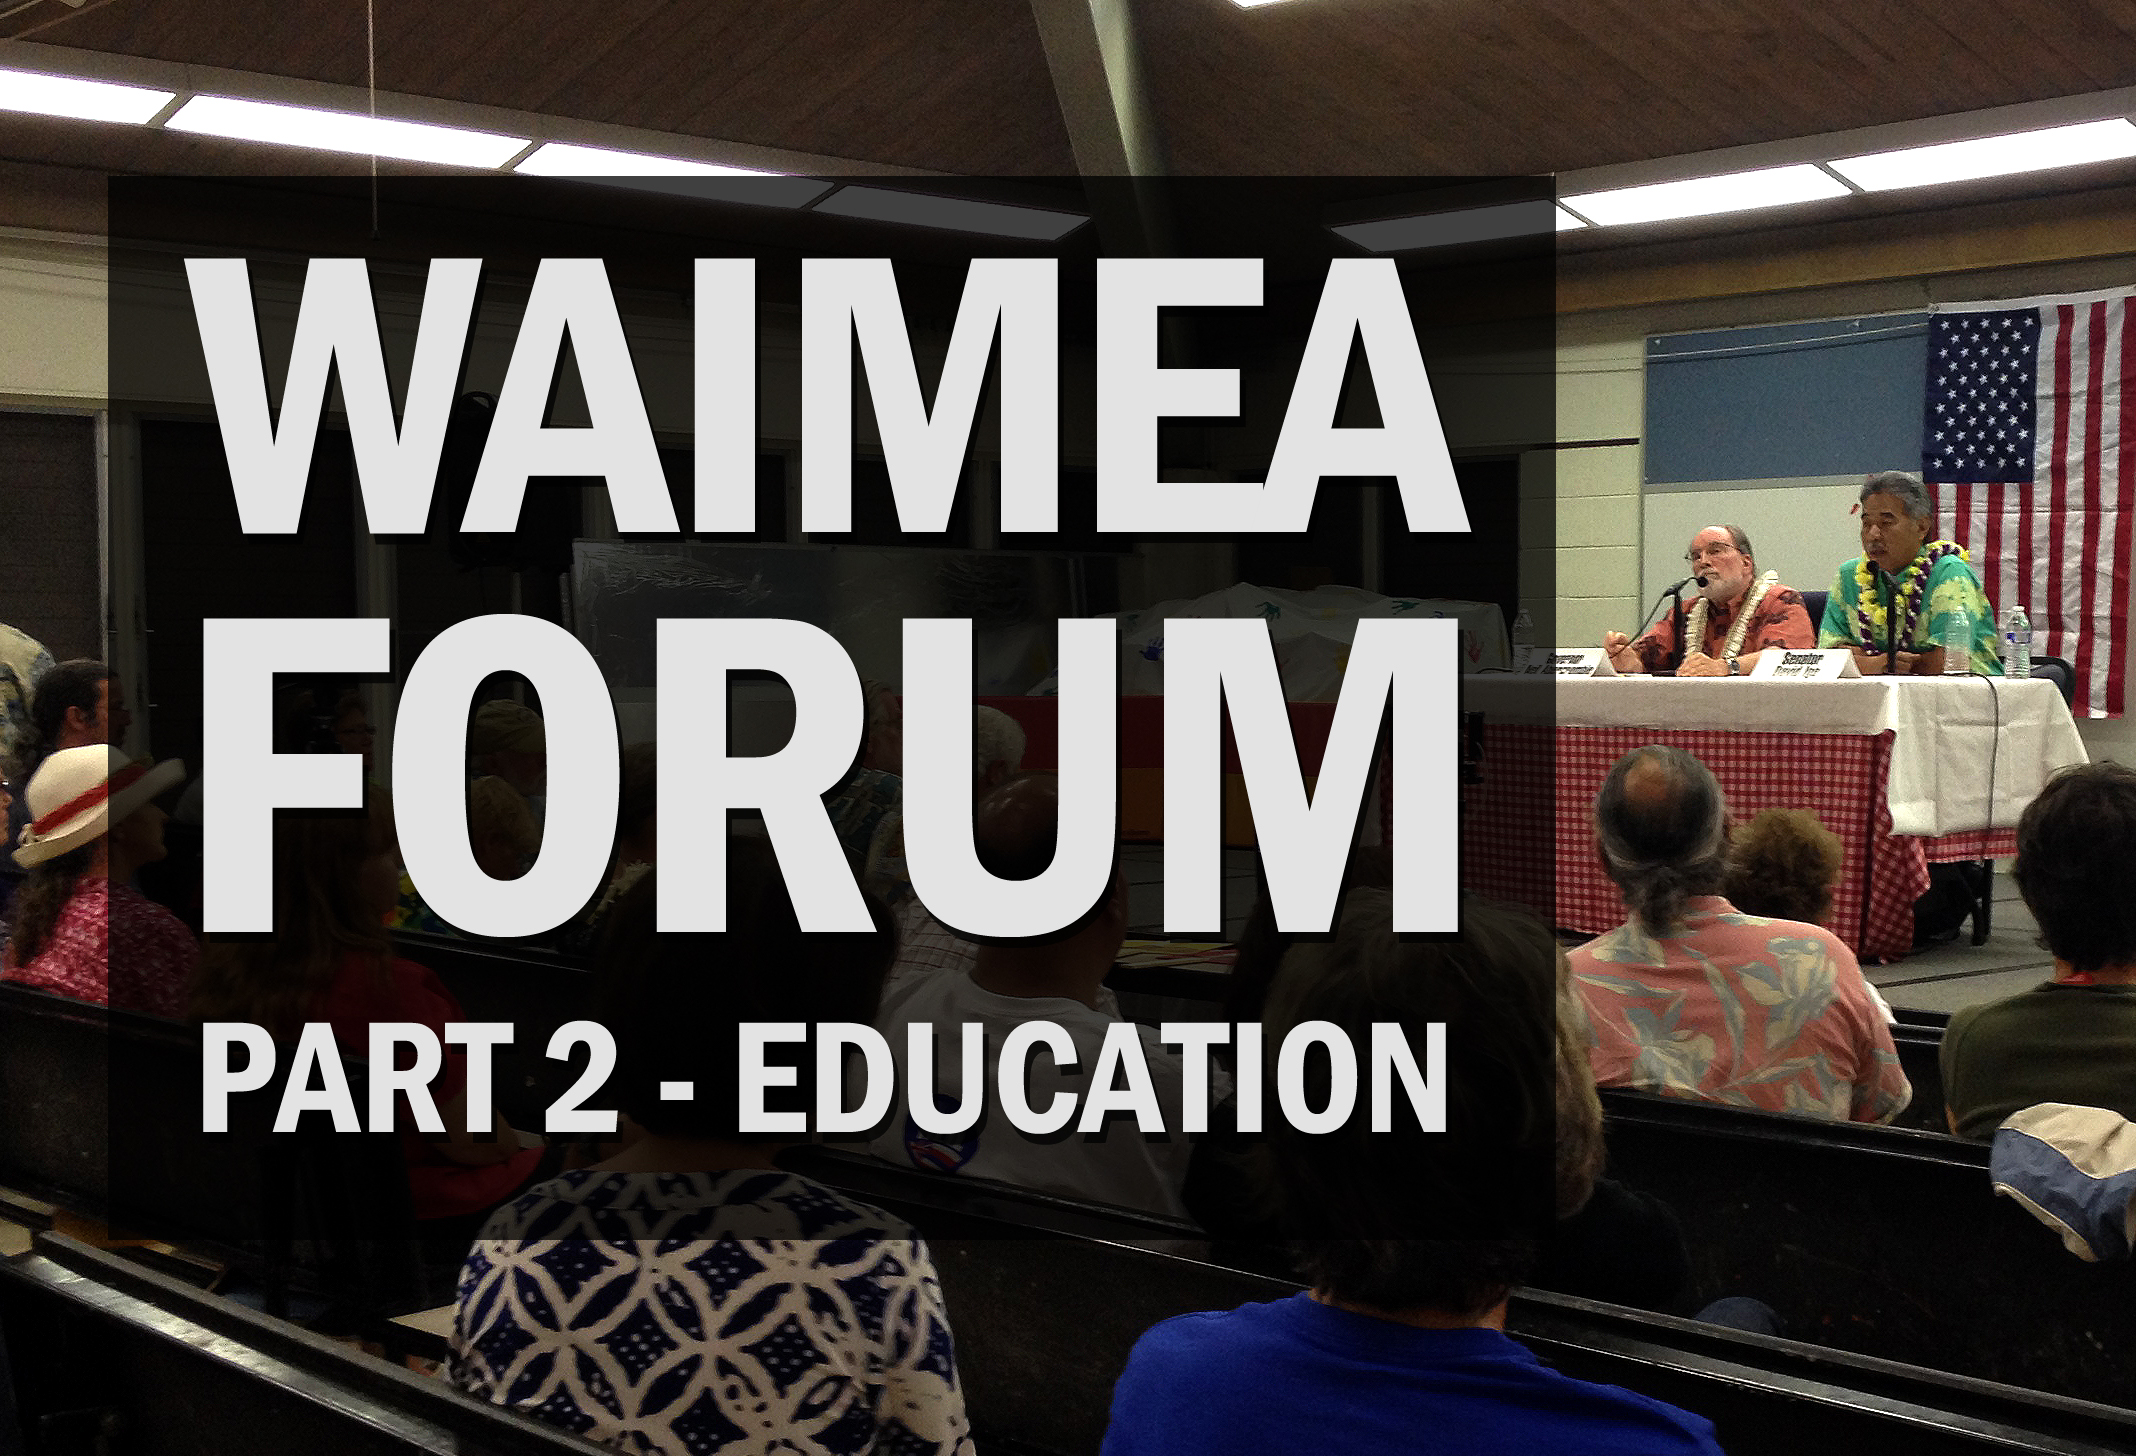 Preschool, BOE, Palamanui: Ige, Abercrombie Debate Education